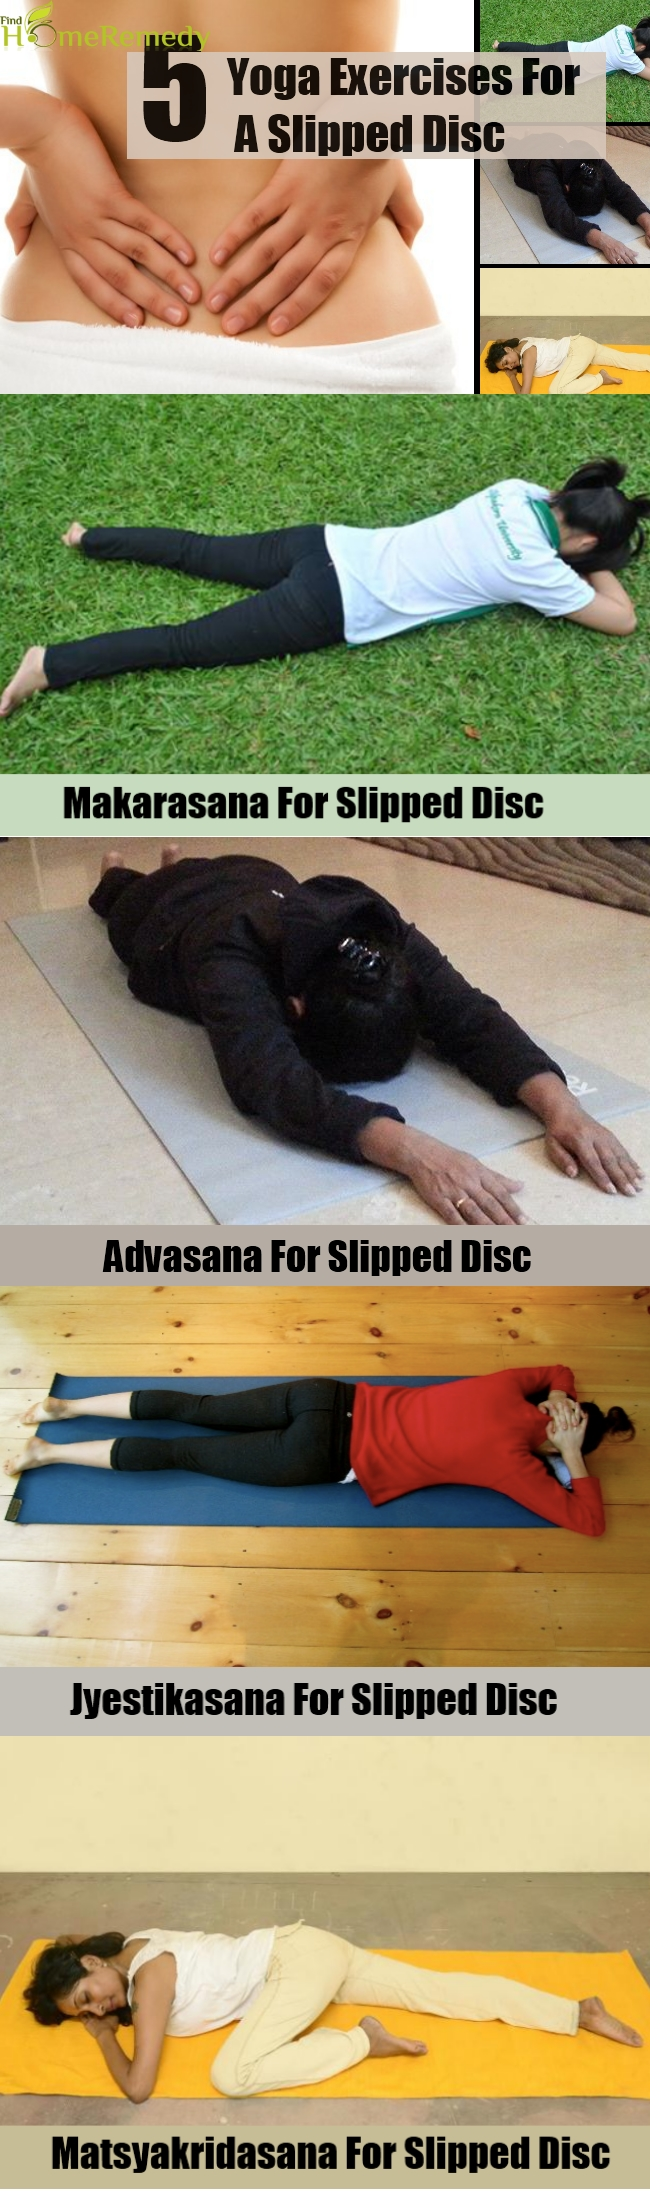 Top 5 Yoga Exercises For A Slipped Disc